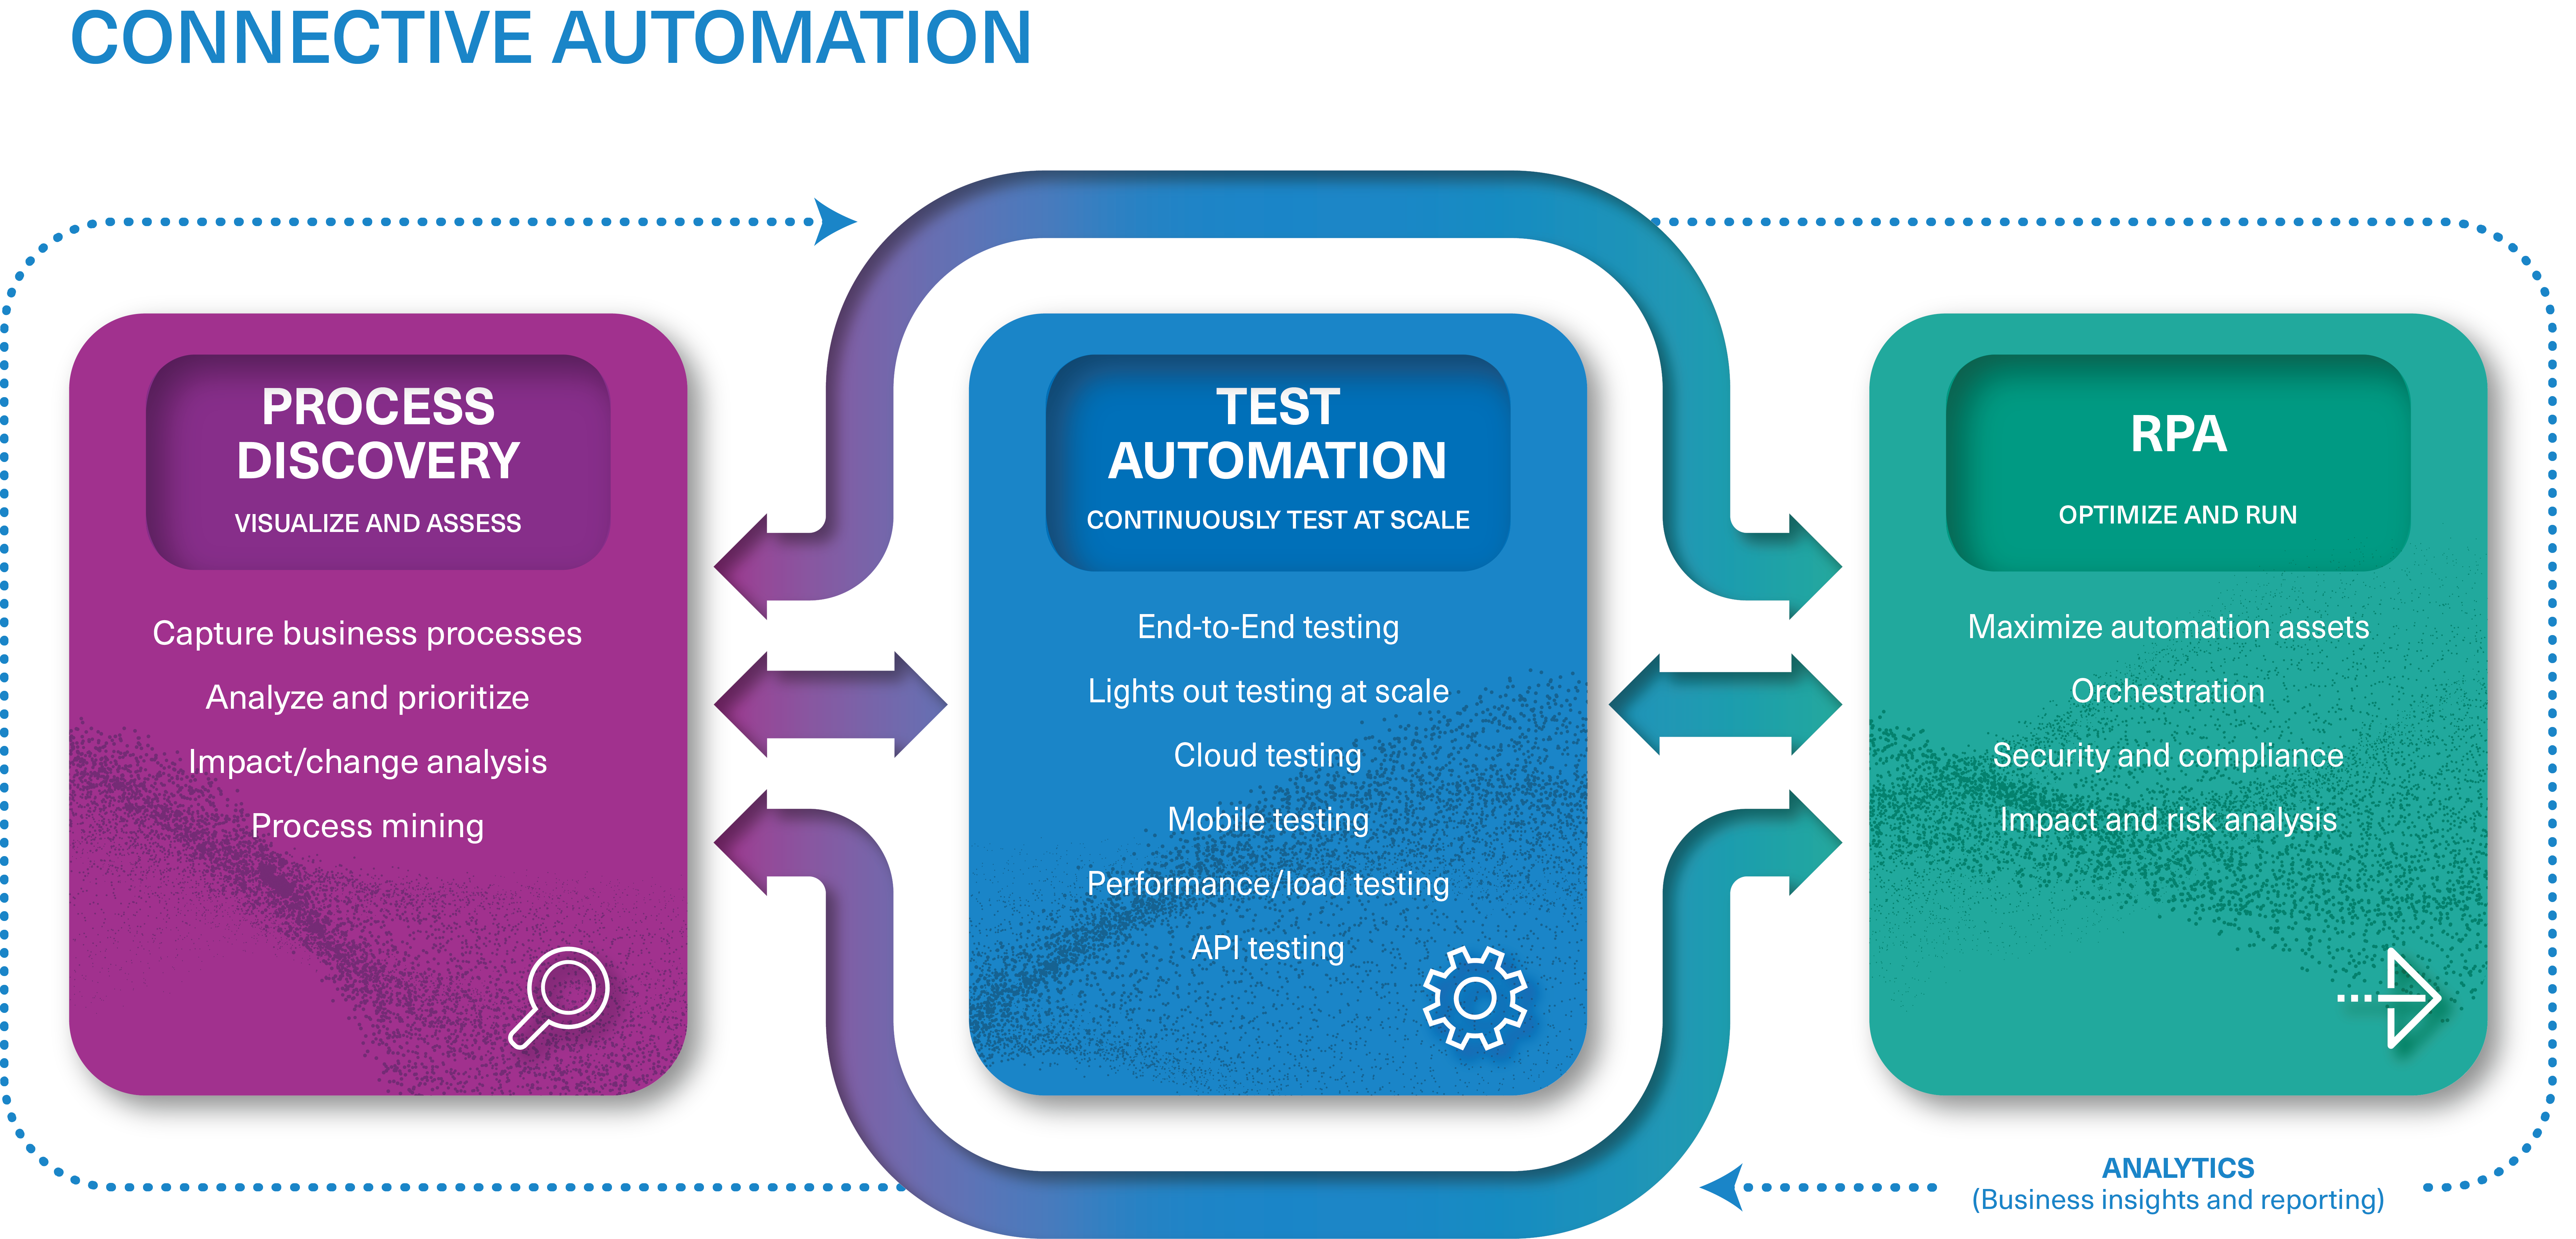 Connective Automation (Process Discovery, Test Automation, RPA)